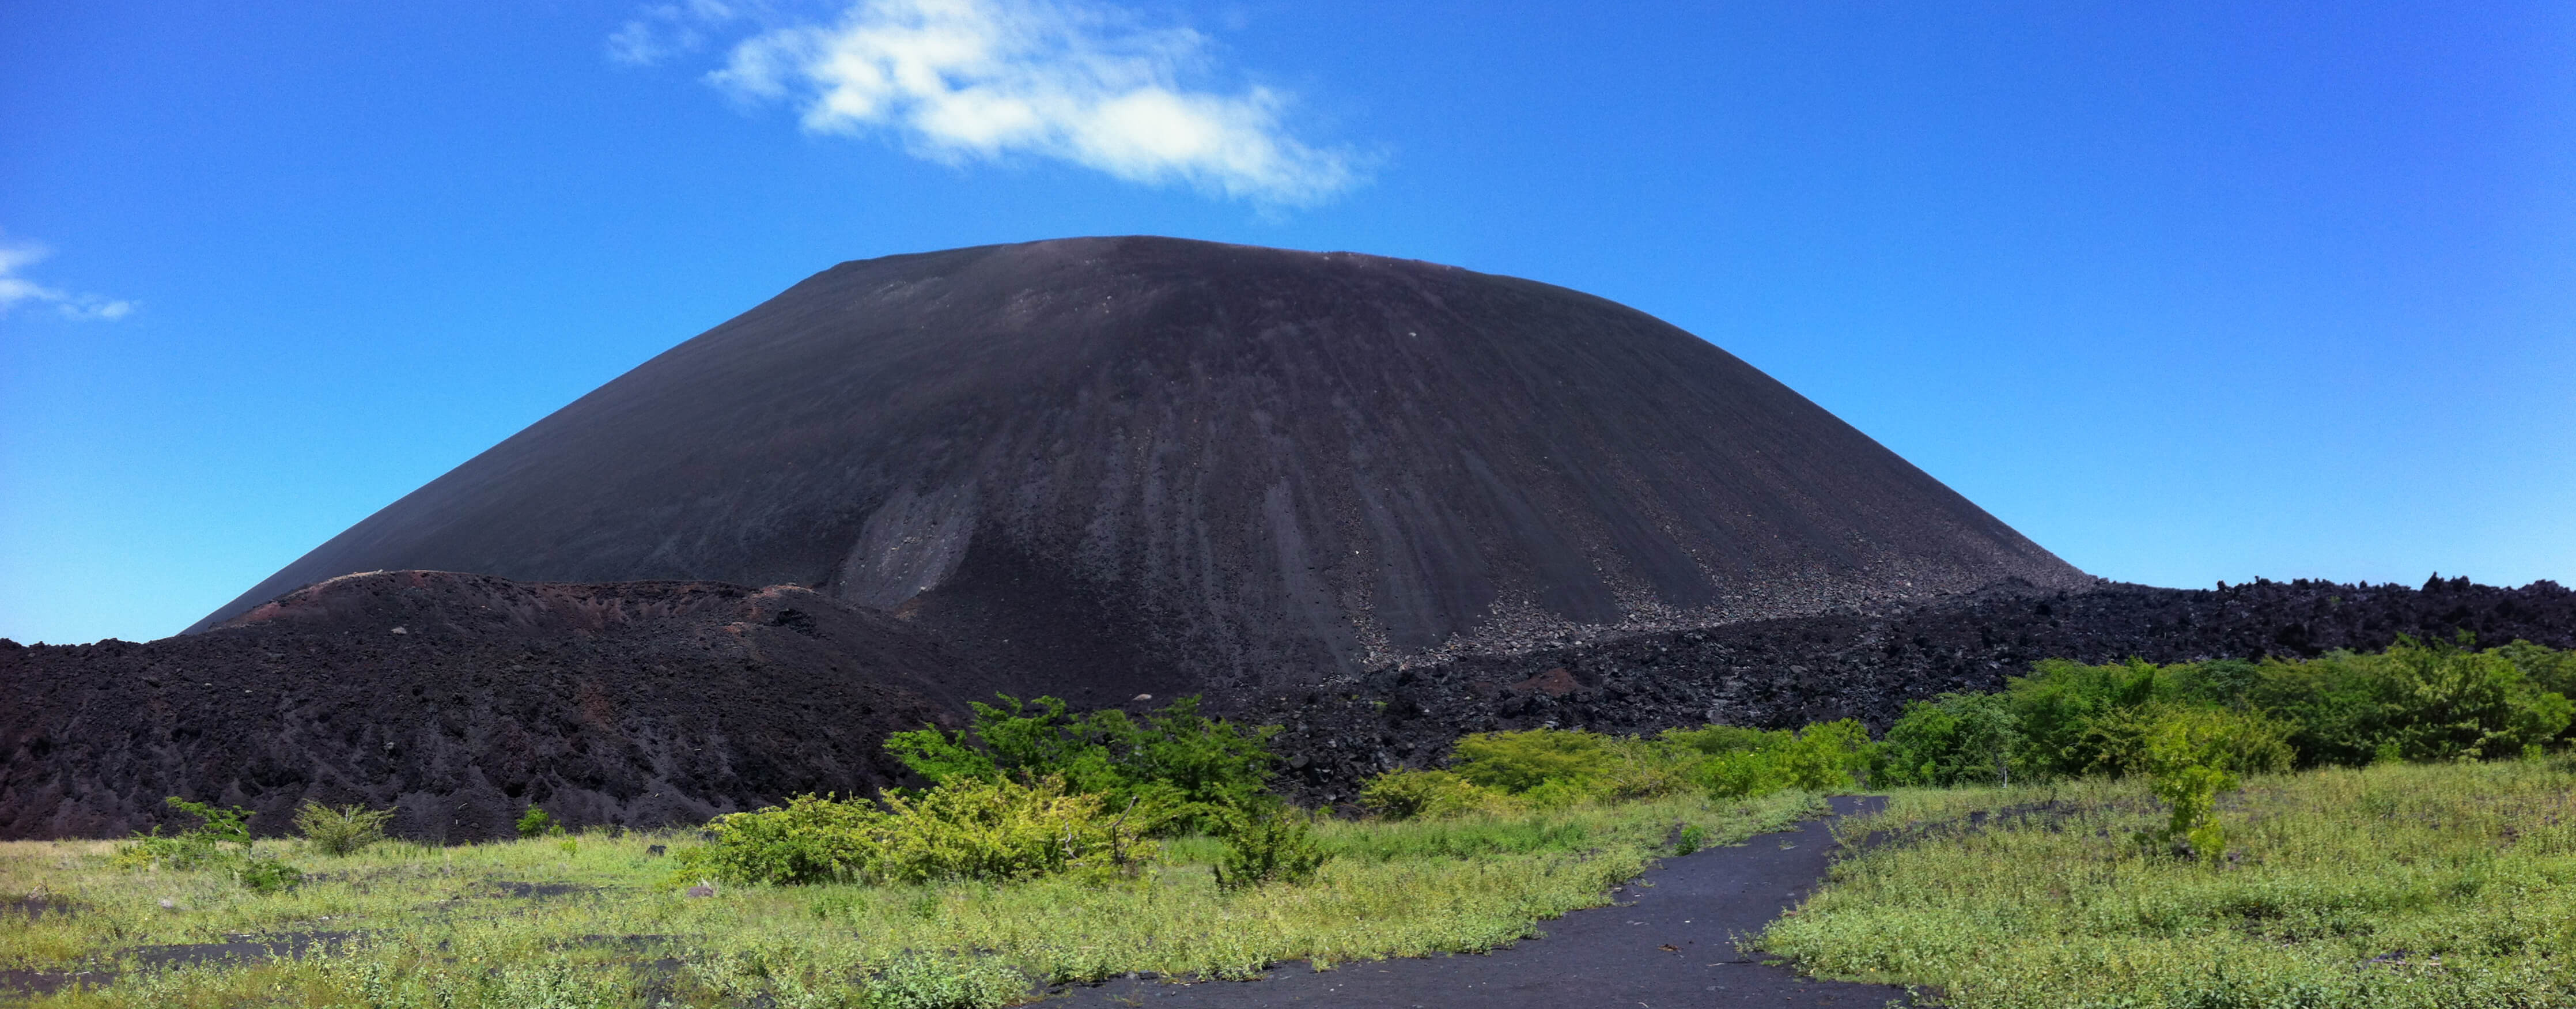 Cerro Negro | Photo by Wilson Carletti (All Rights Reserved)